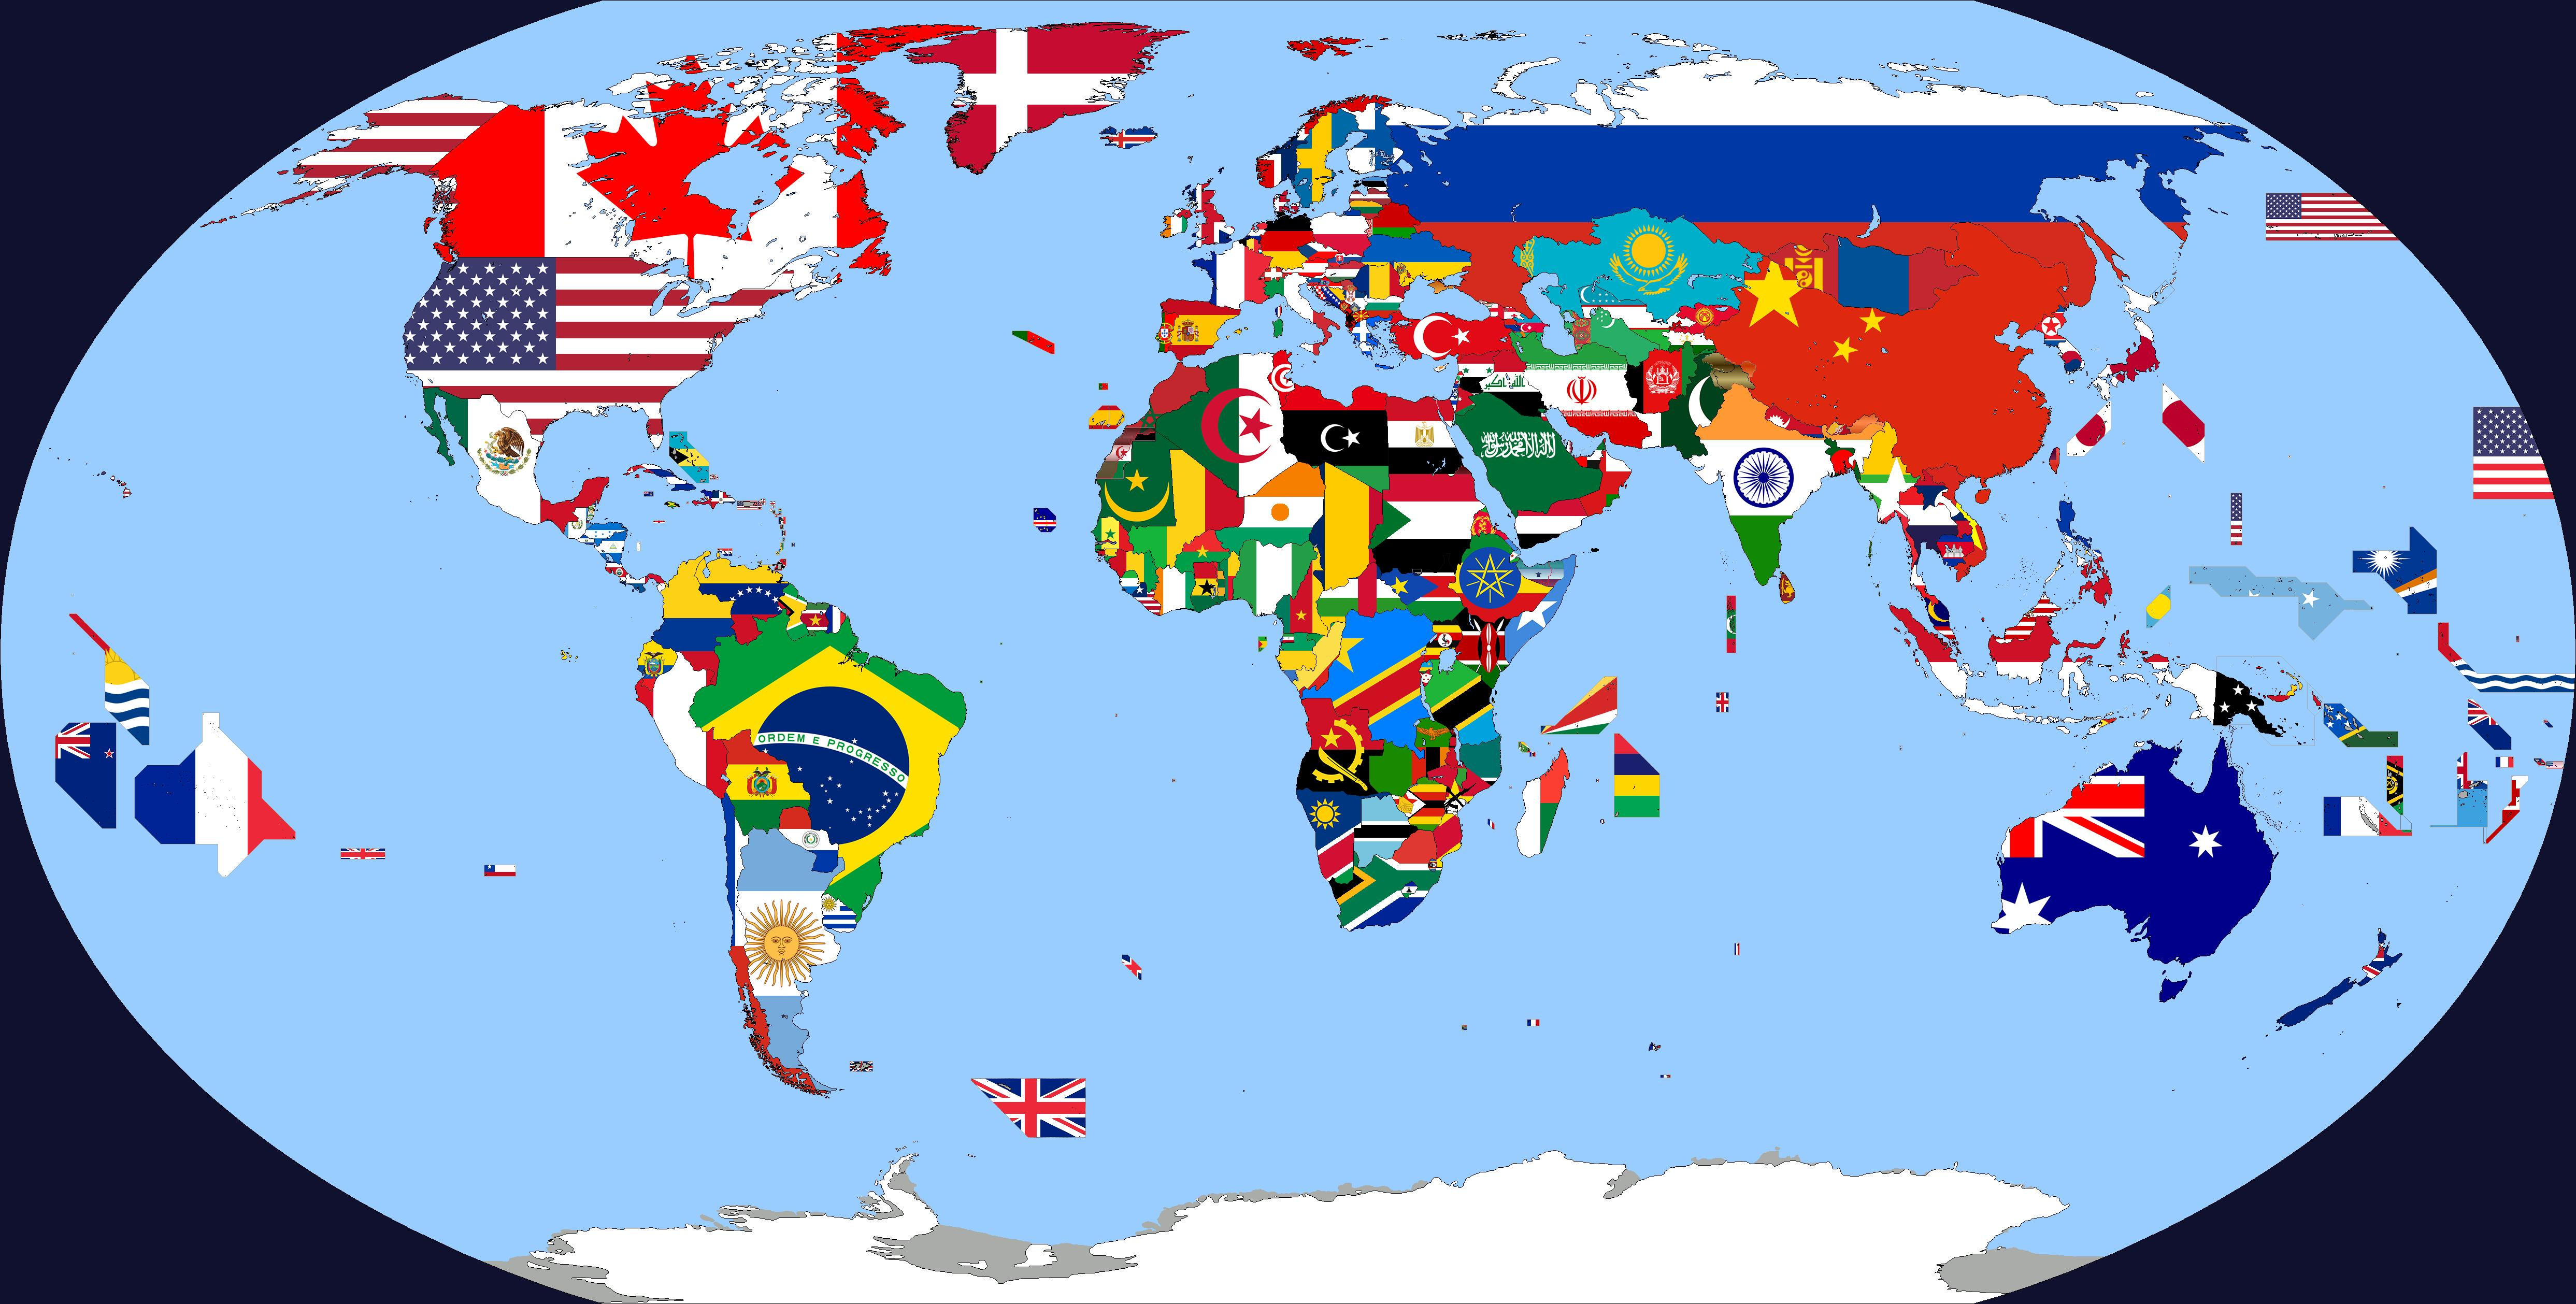 Just finished my Flag Map of the world [OC] [4972x2517] - Imgur